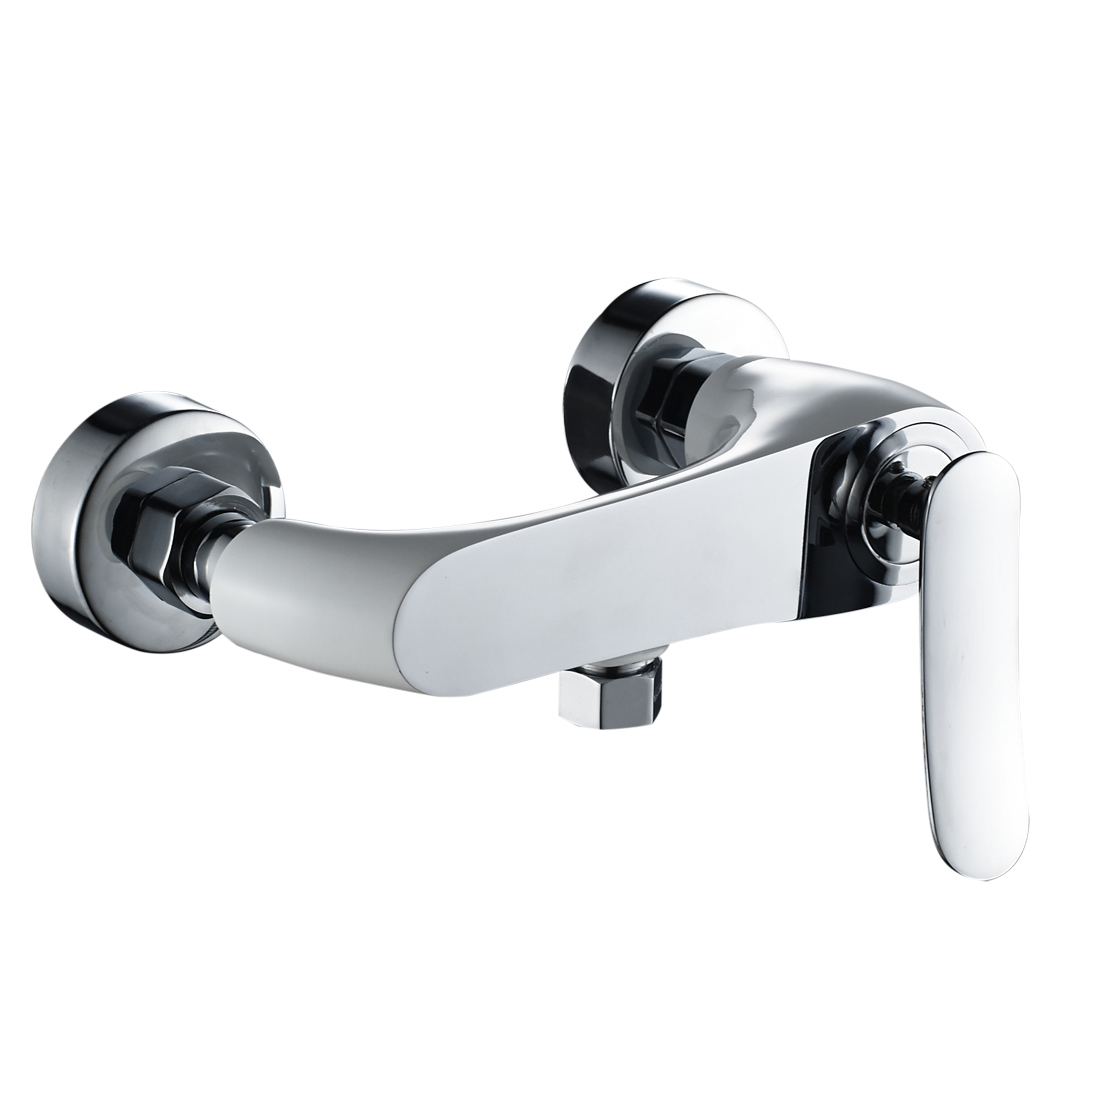 Shower Mixer Valve,Wall Mounted Single Lever Manual Exposed Shower Hot/Cold Valve Tap Faucet,White with Chrome Finish